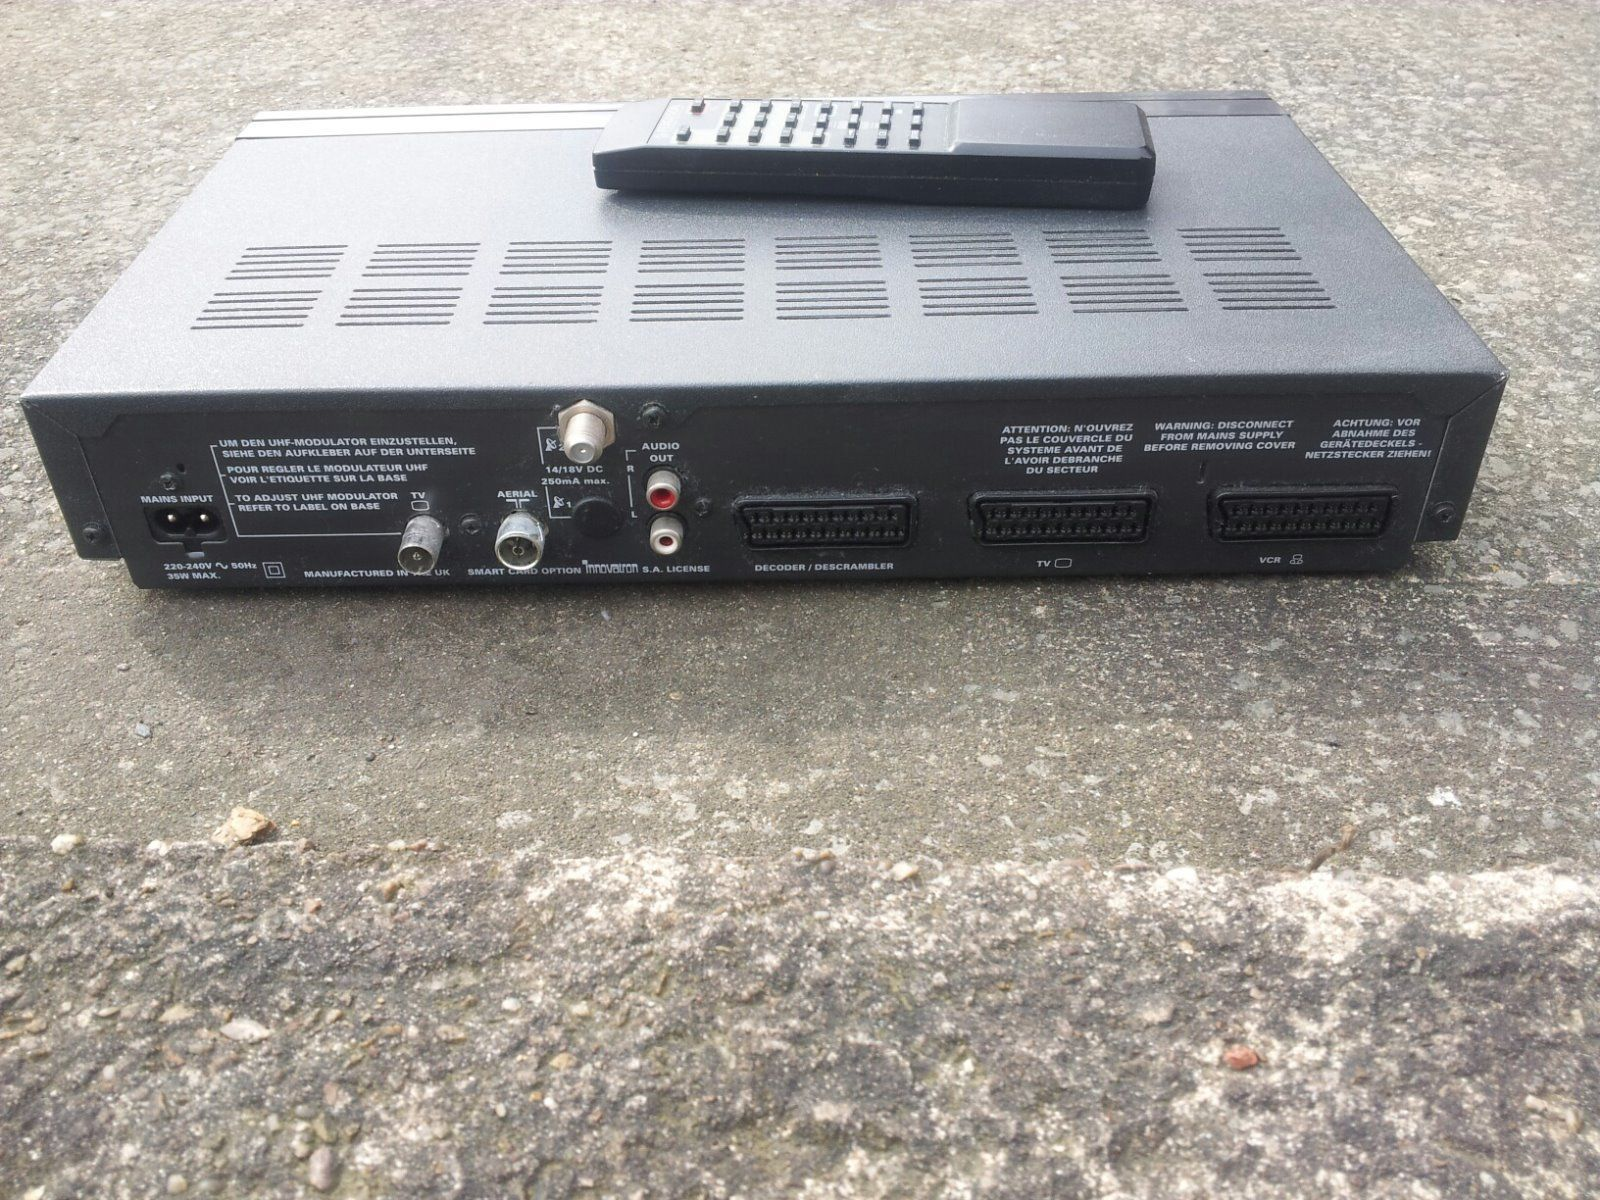 Ferguson Srd 16 Satellite Receiver Goodmans St700 Analogue